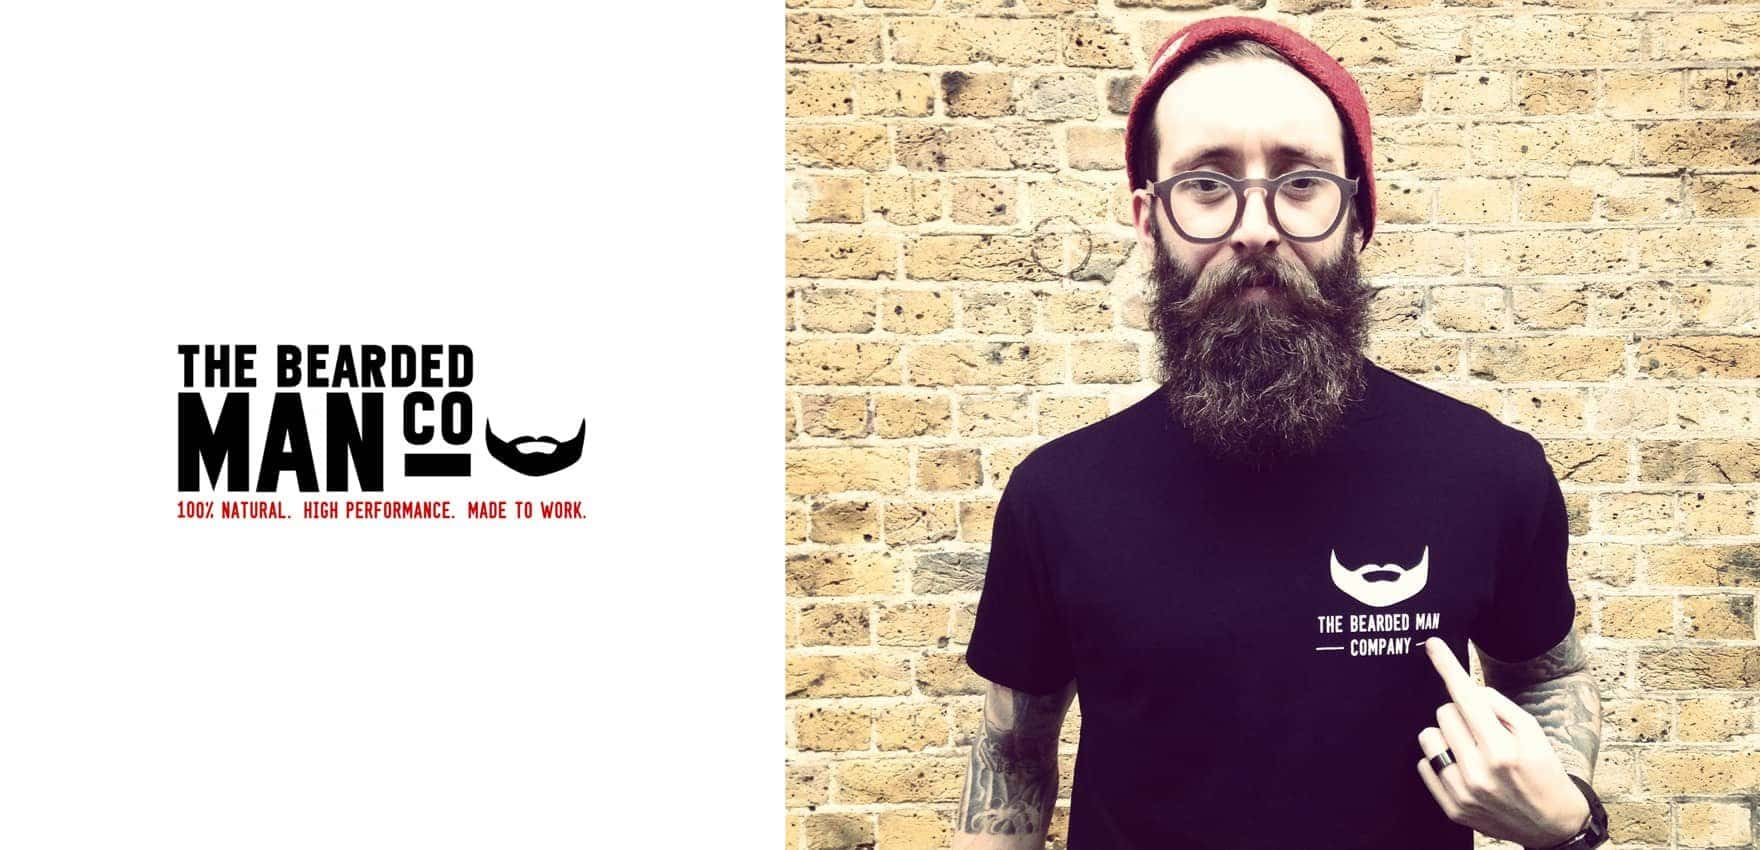 Meet the Maker - The Bearded Man Co